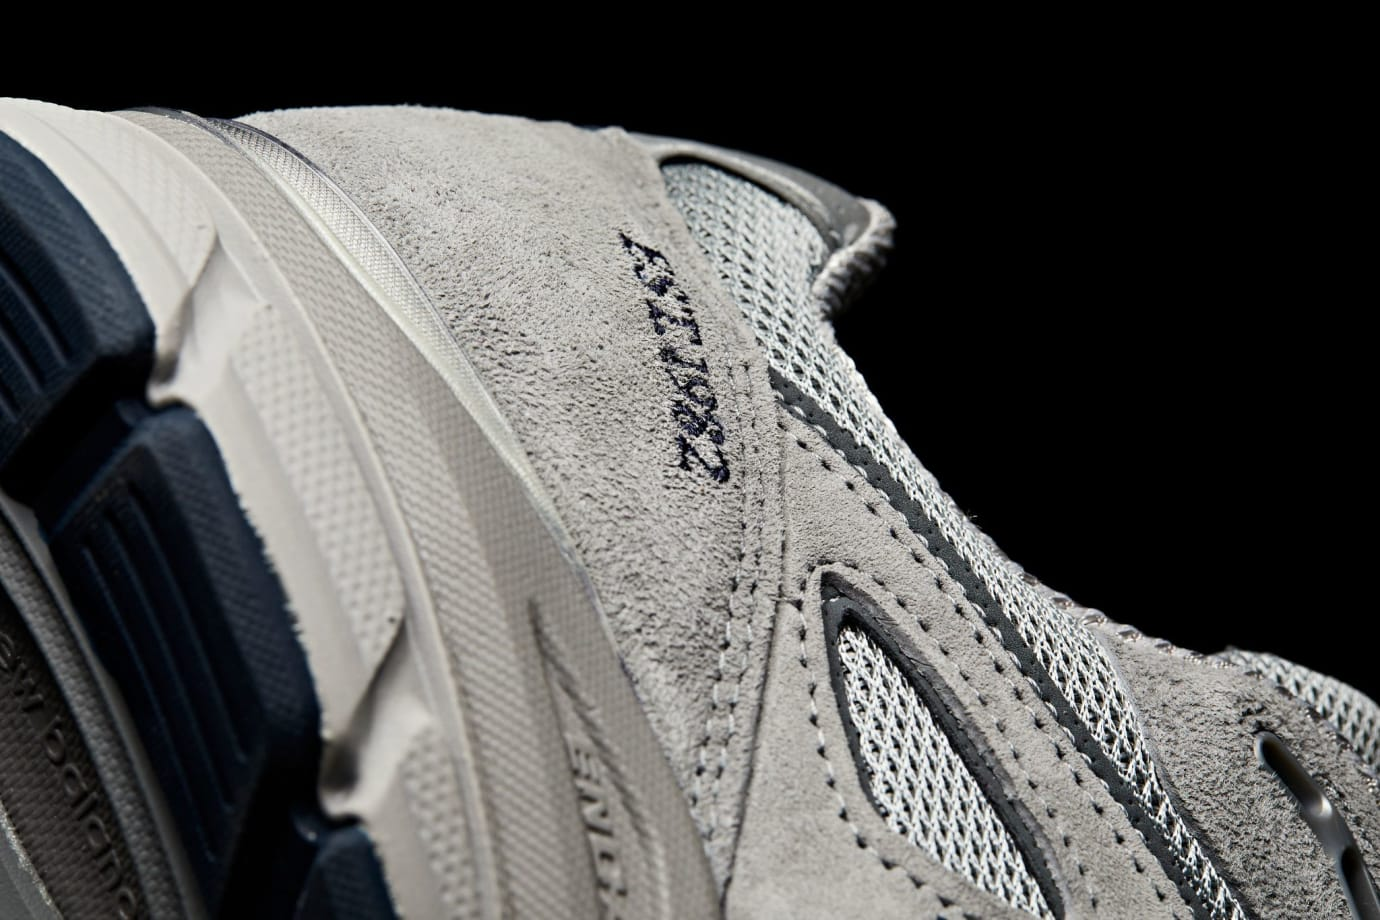 e17fb957344c9 New Balance MADE 990v4 '1982' Release Date | Sole Collector